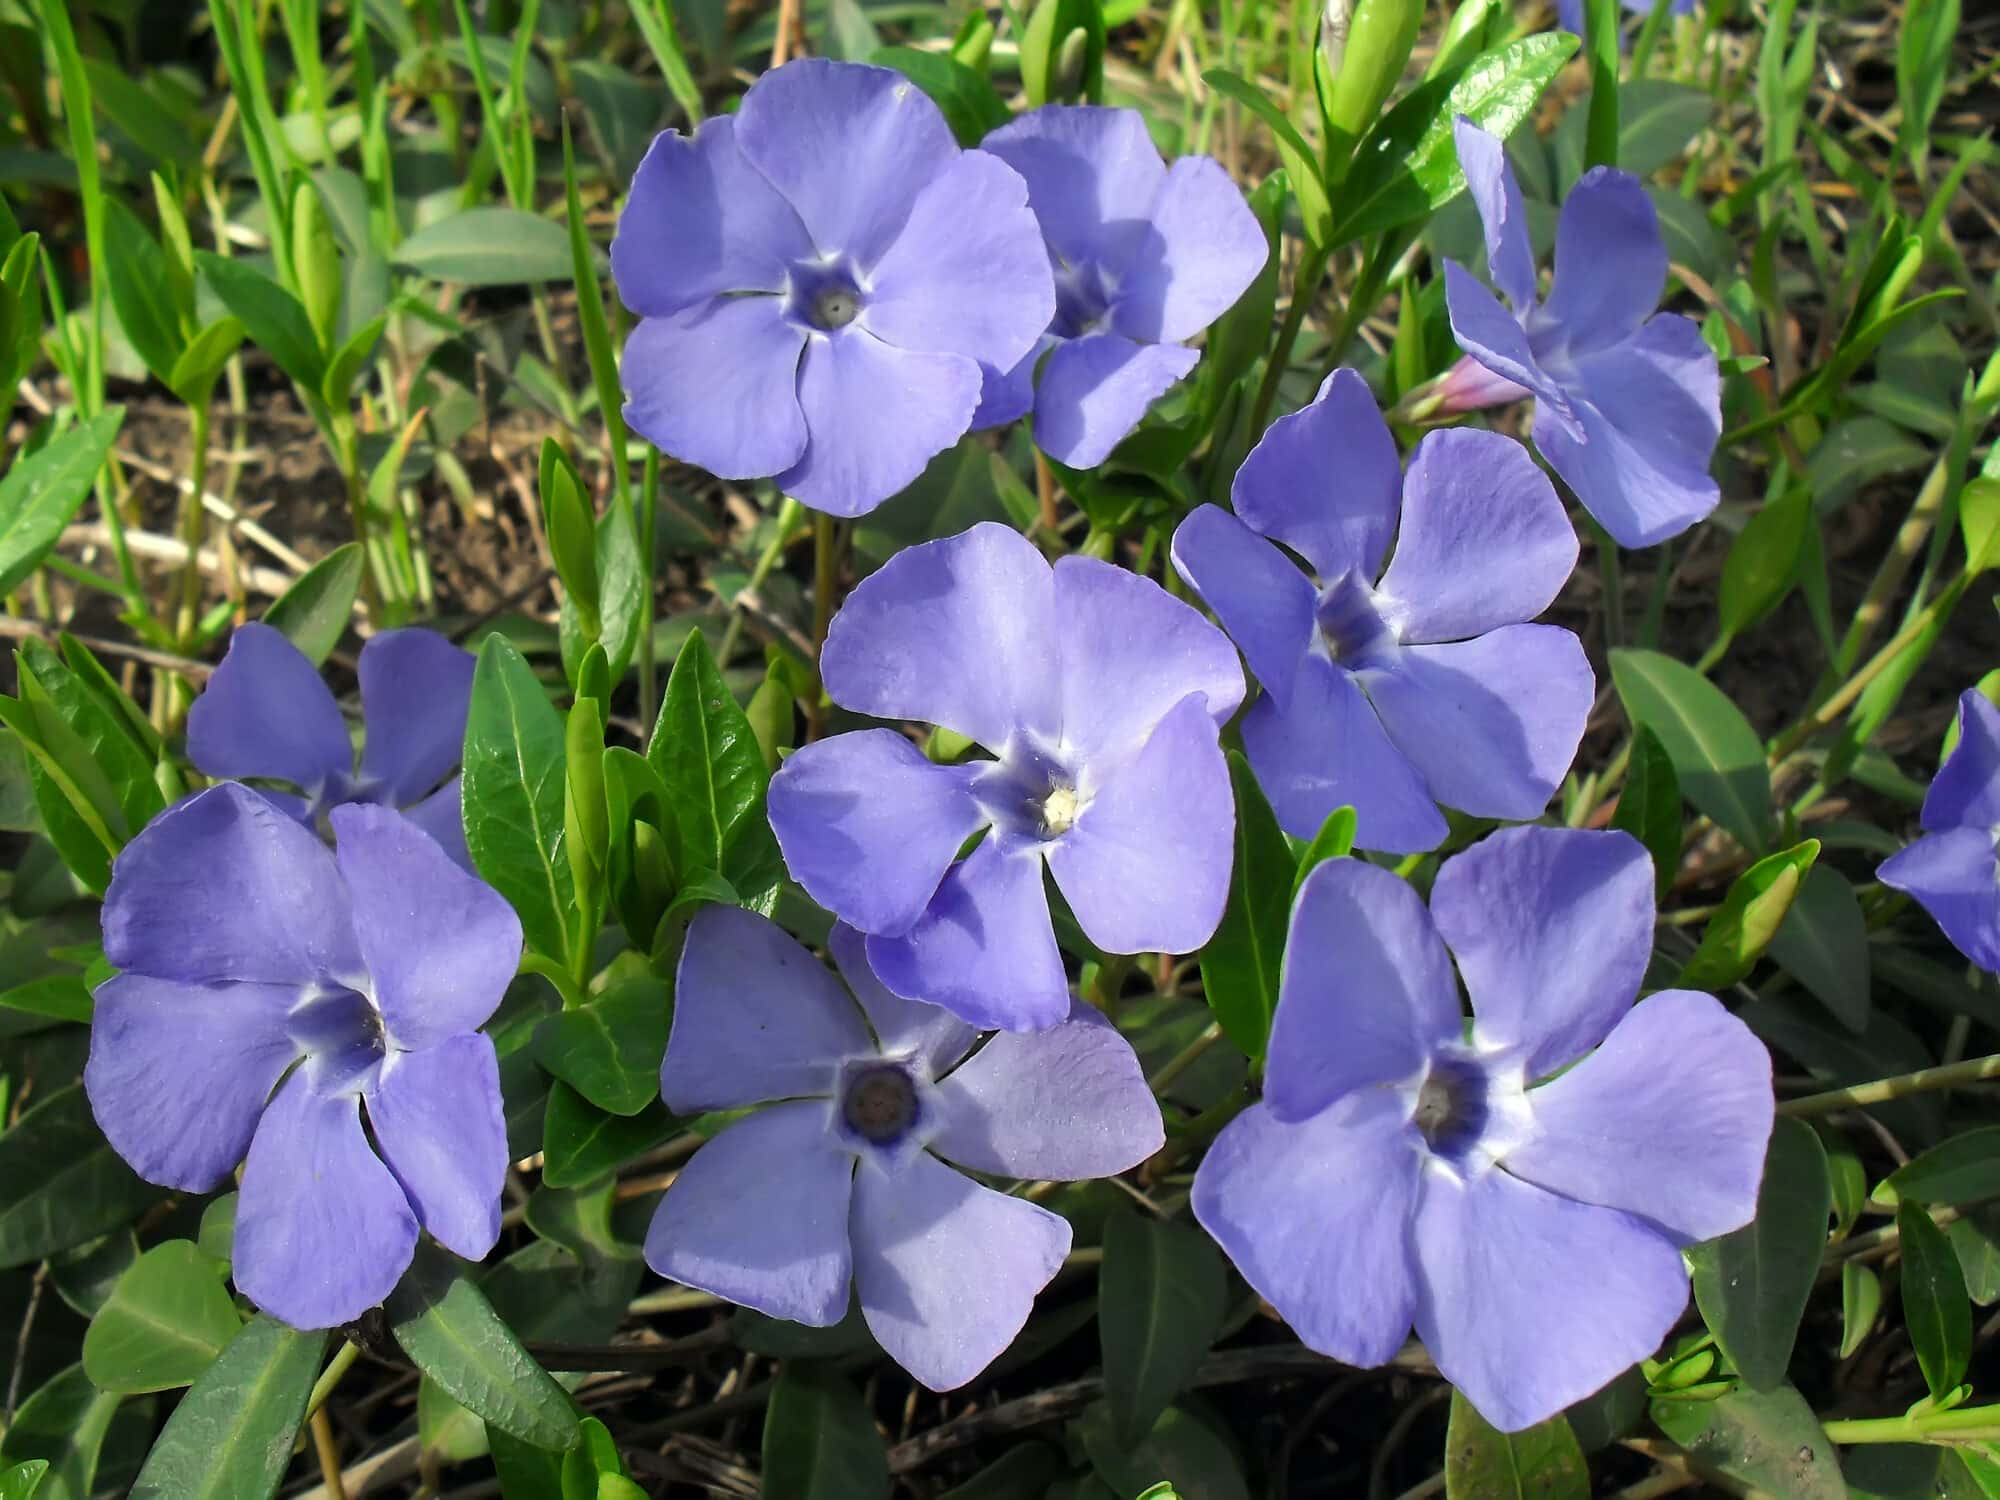 Periwinkle: An Herbal Memory Enhancer